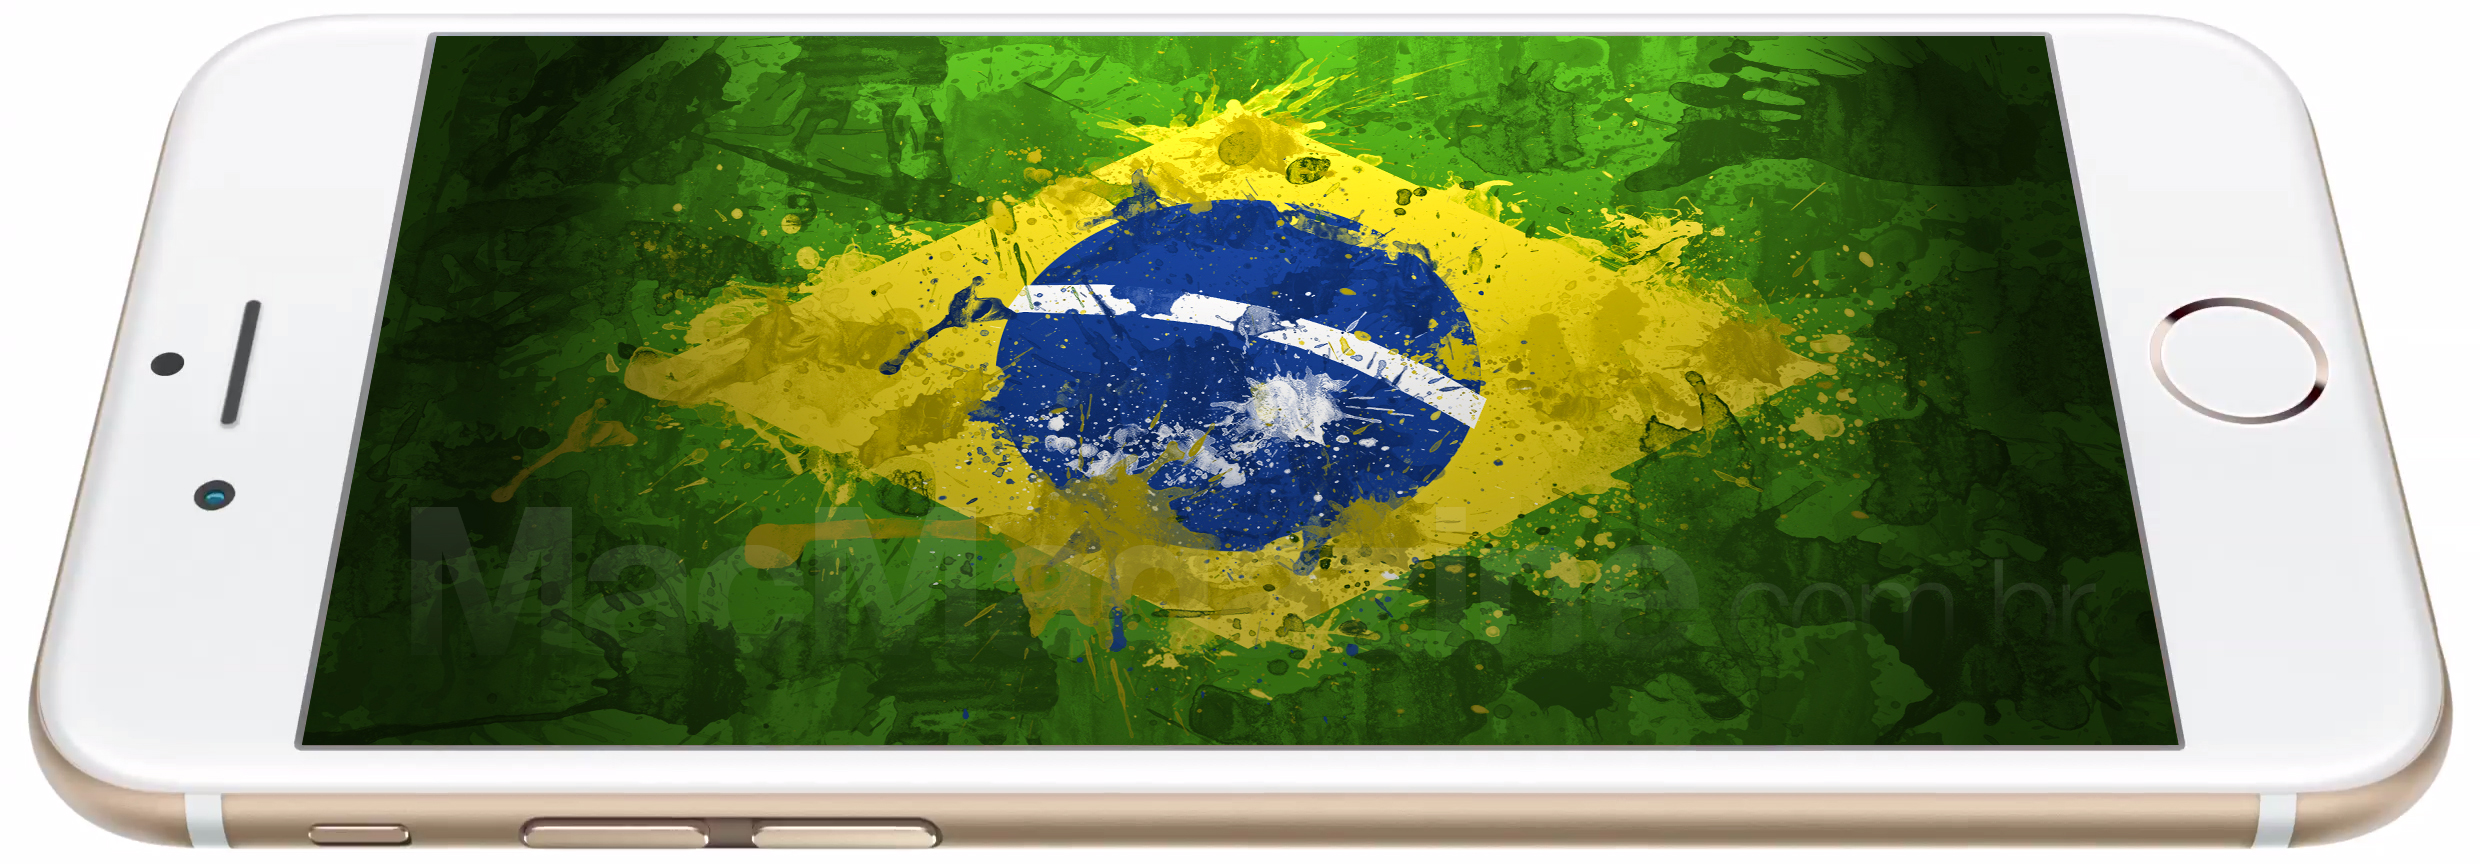 iPhone 6 com a bandeira do Brasil (by MacMagazine)